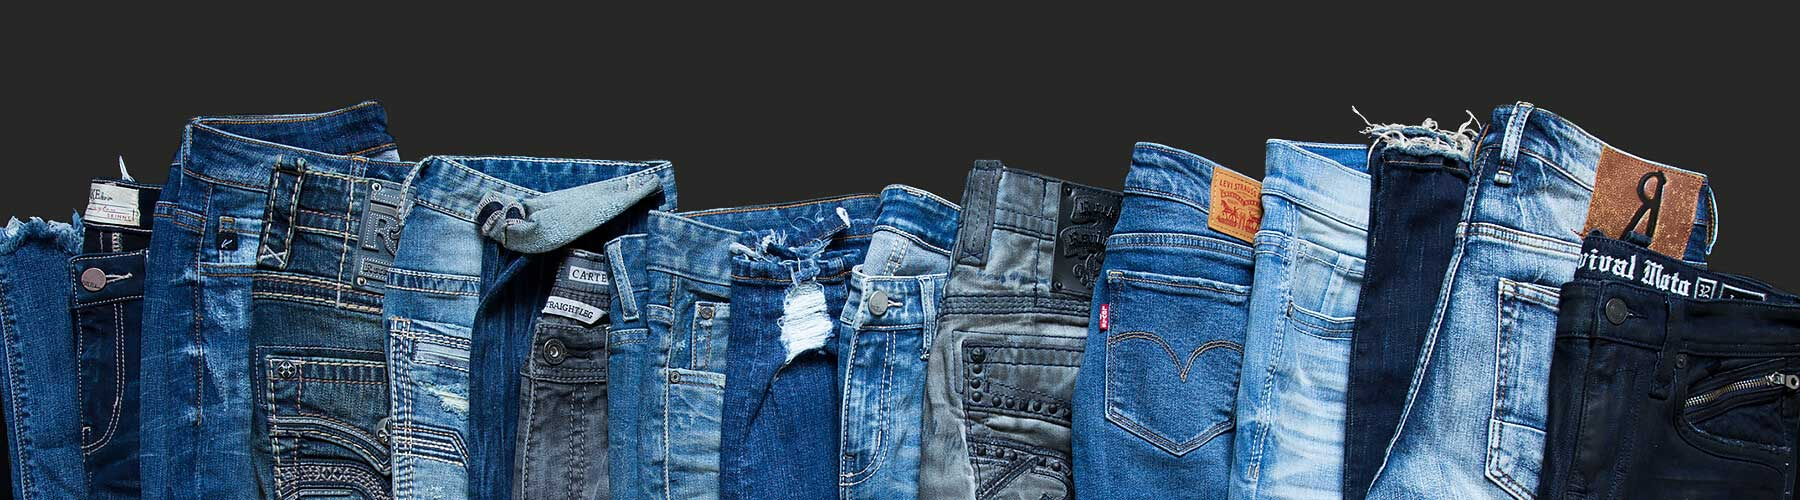 Spotlight on jeans – Denim bounces back